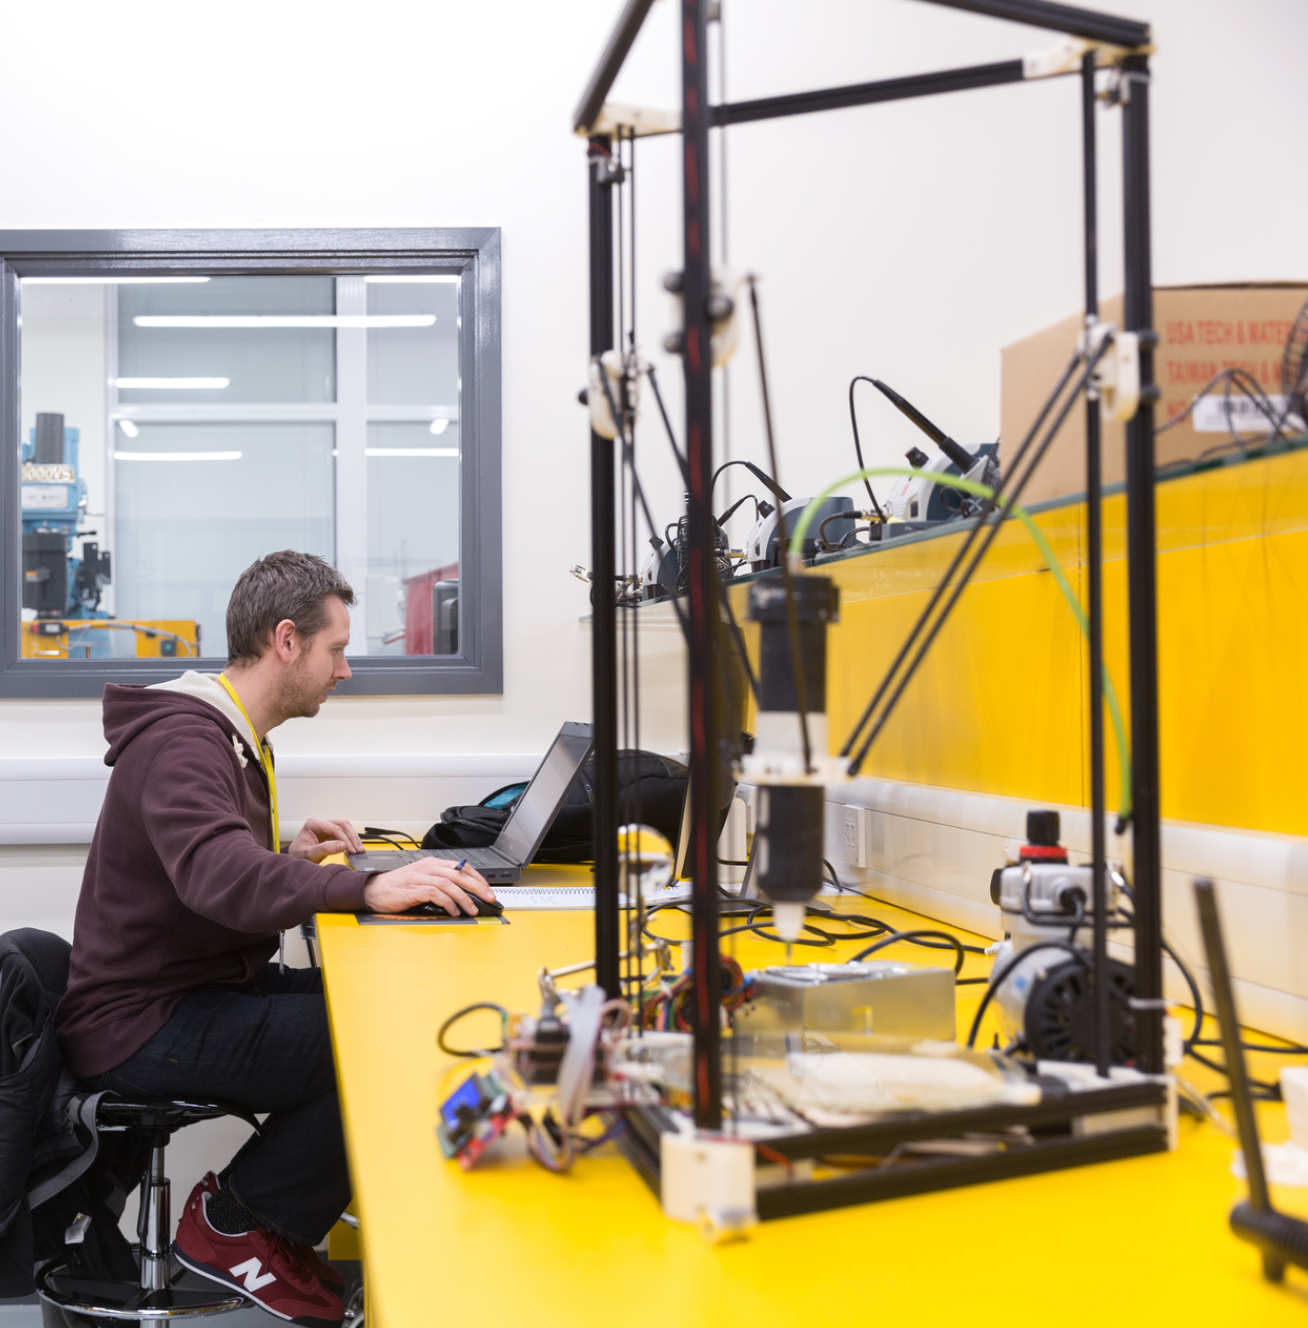 Ceramic 3D printer in the Hackspace at White City. Photo via Imperial College London.